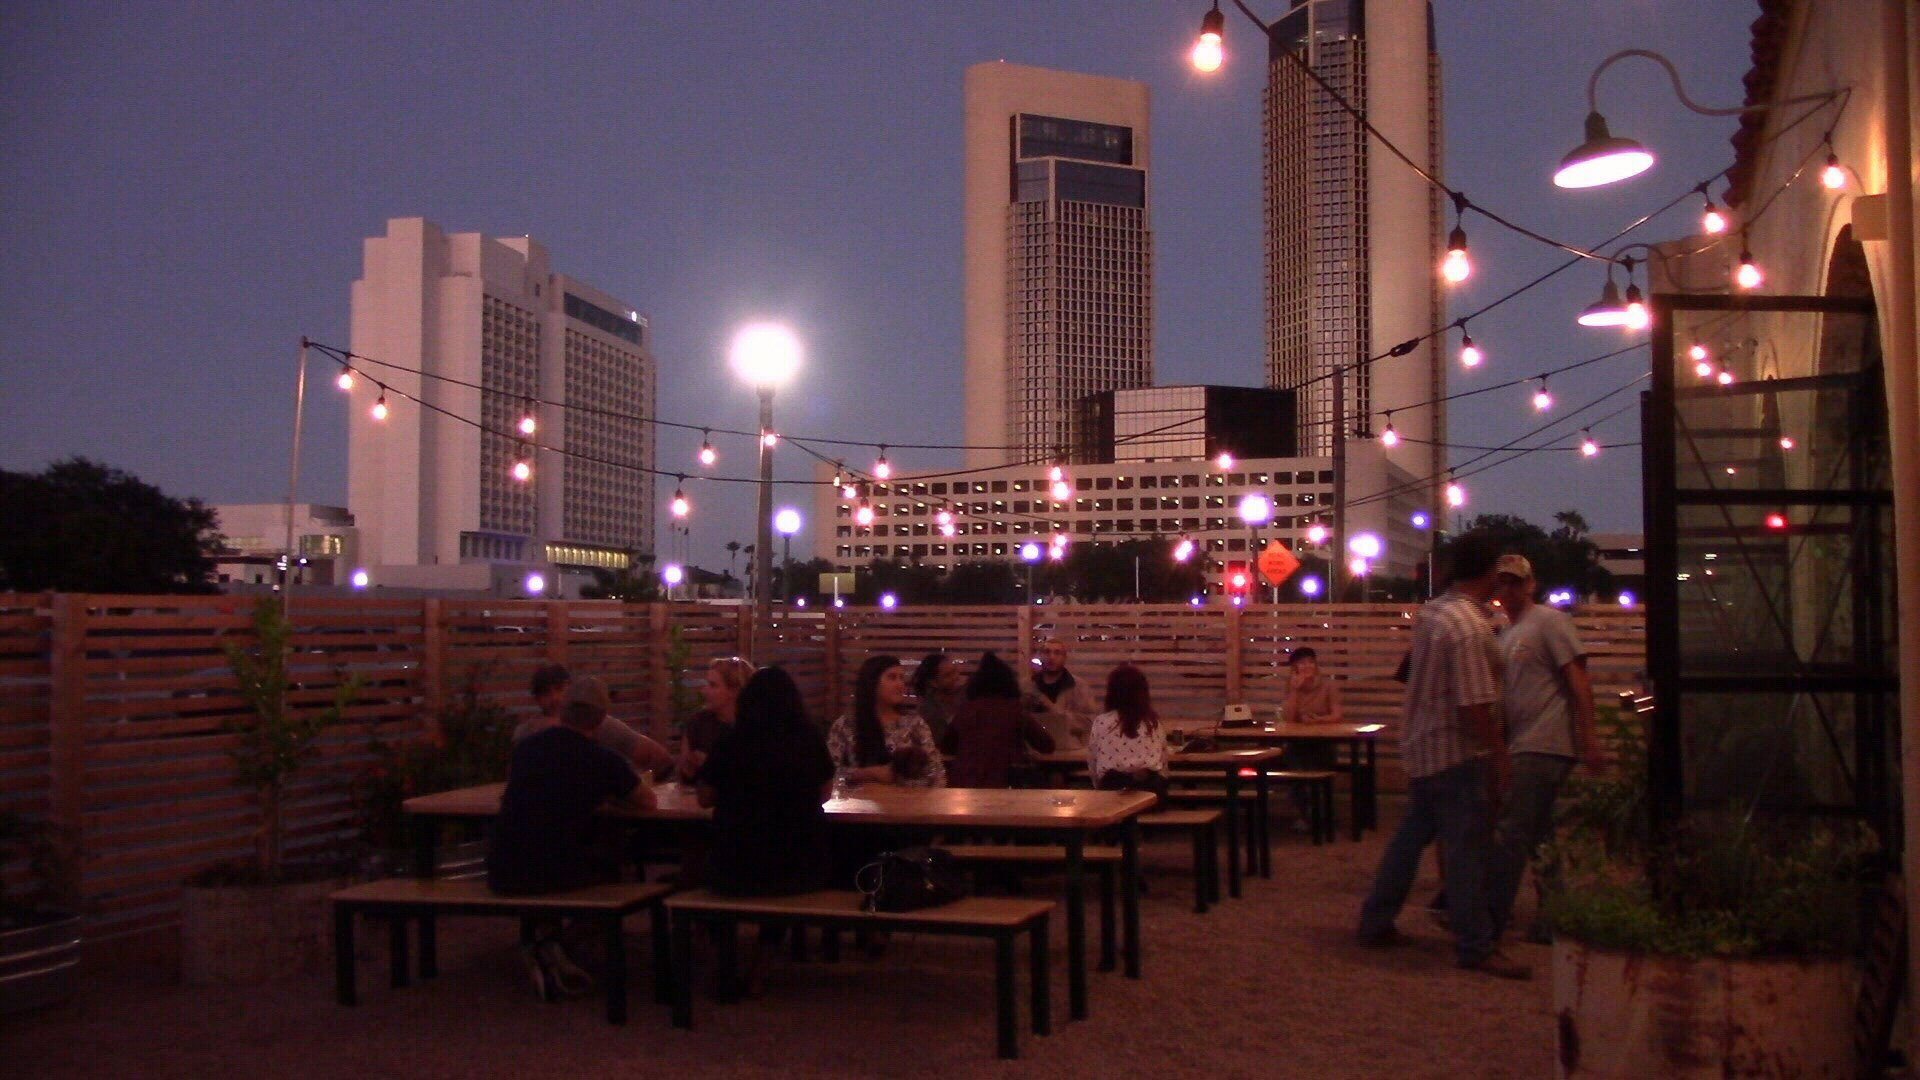 Customers like the crafted cocktails, the patio seating, and the view